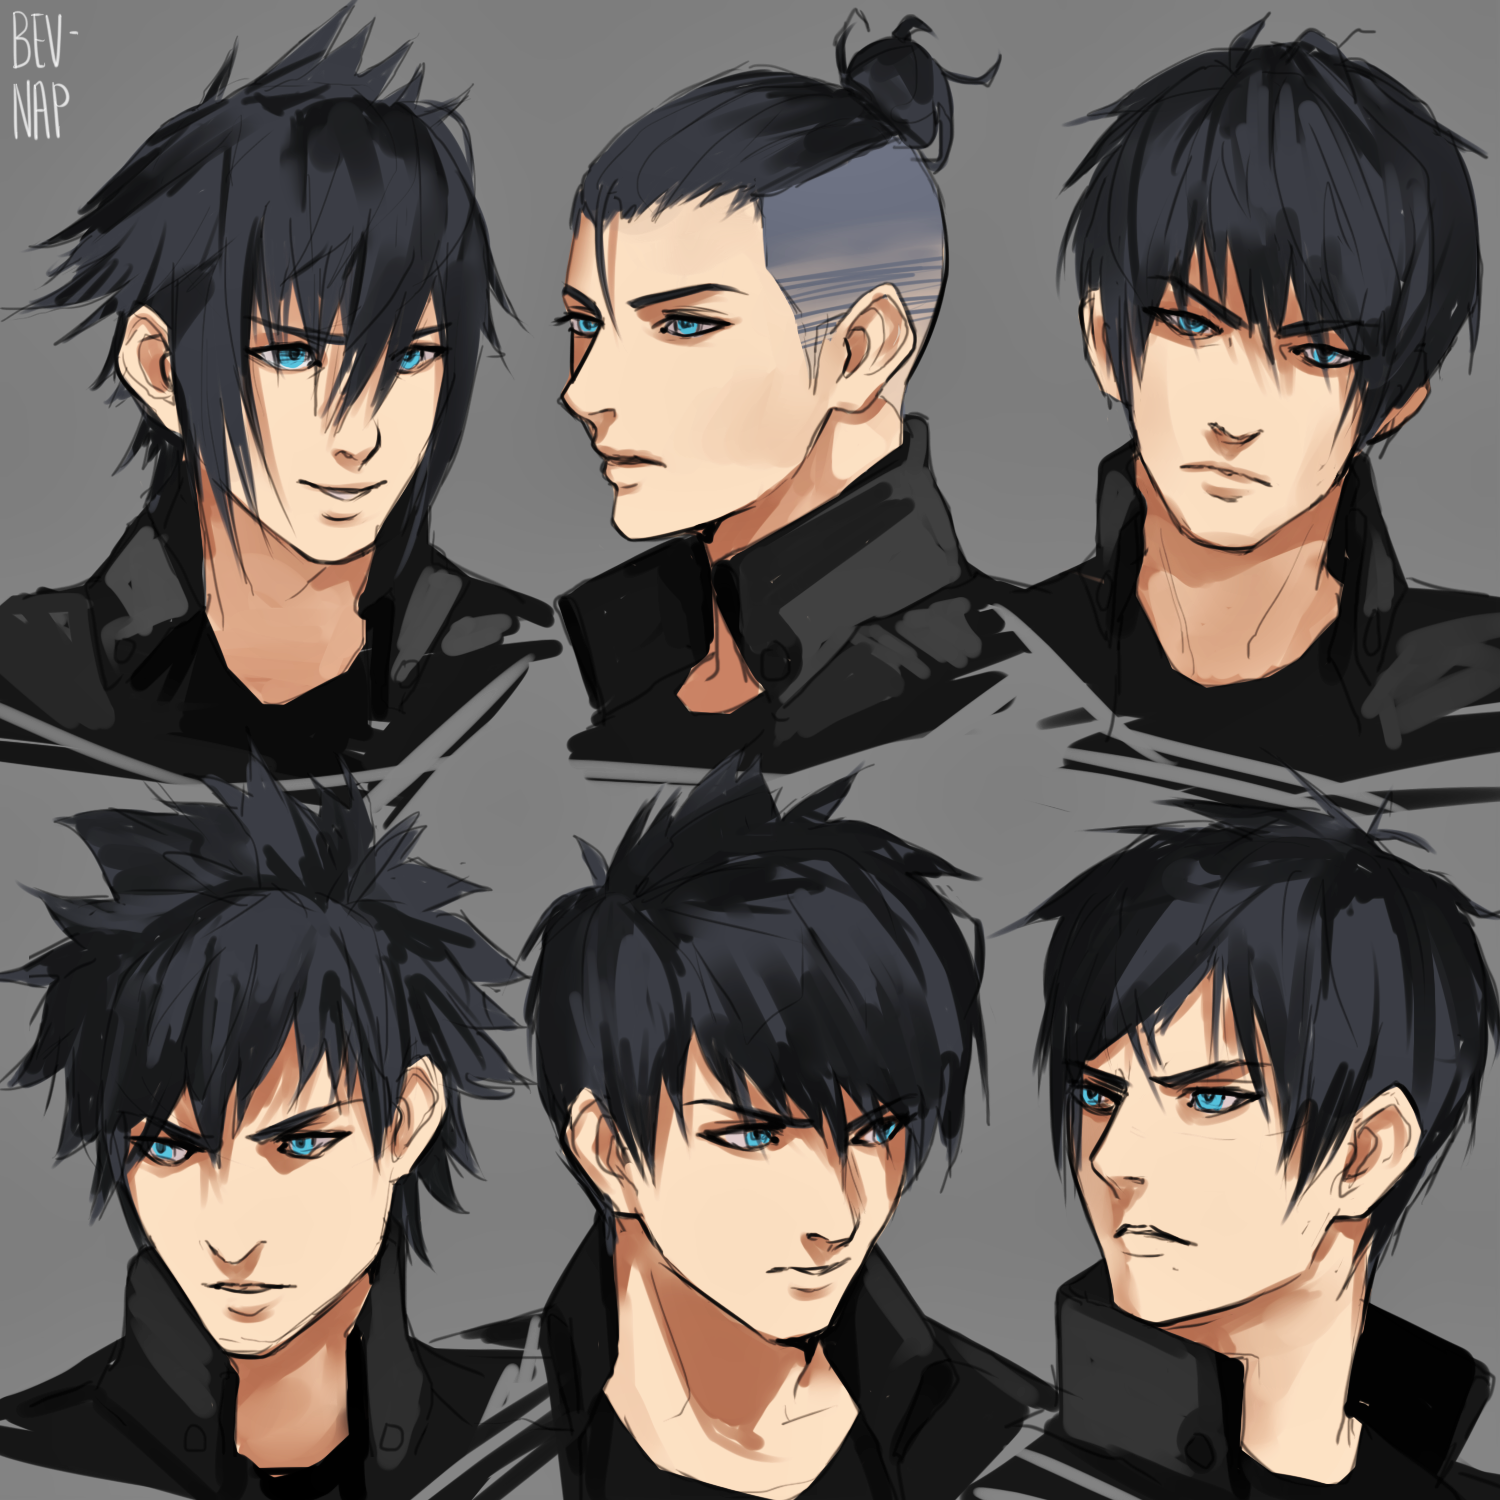 noct_hairstyles_by_bev_napdajp74i.png (1500×1500) Anime